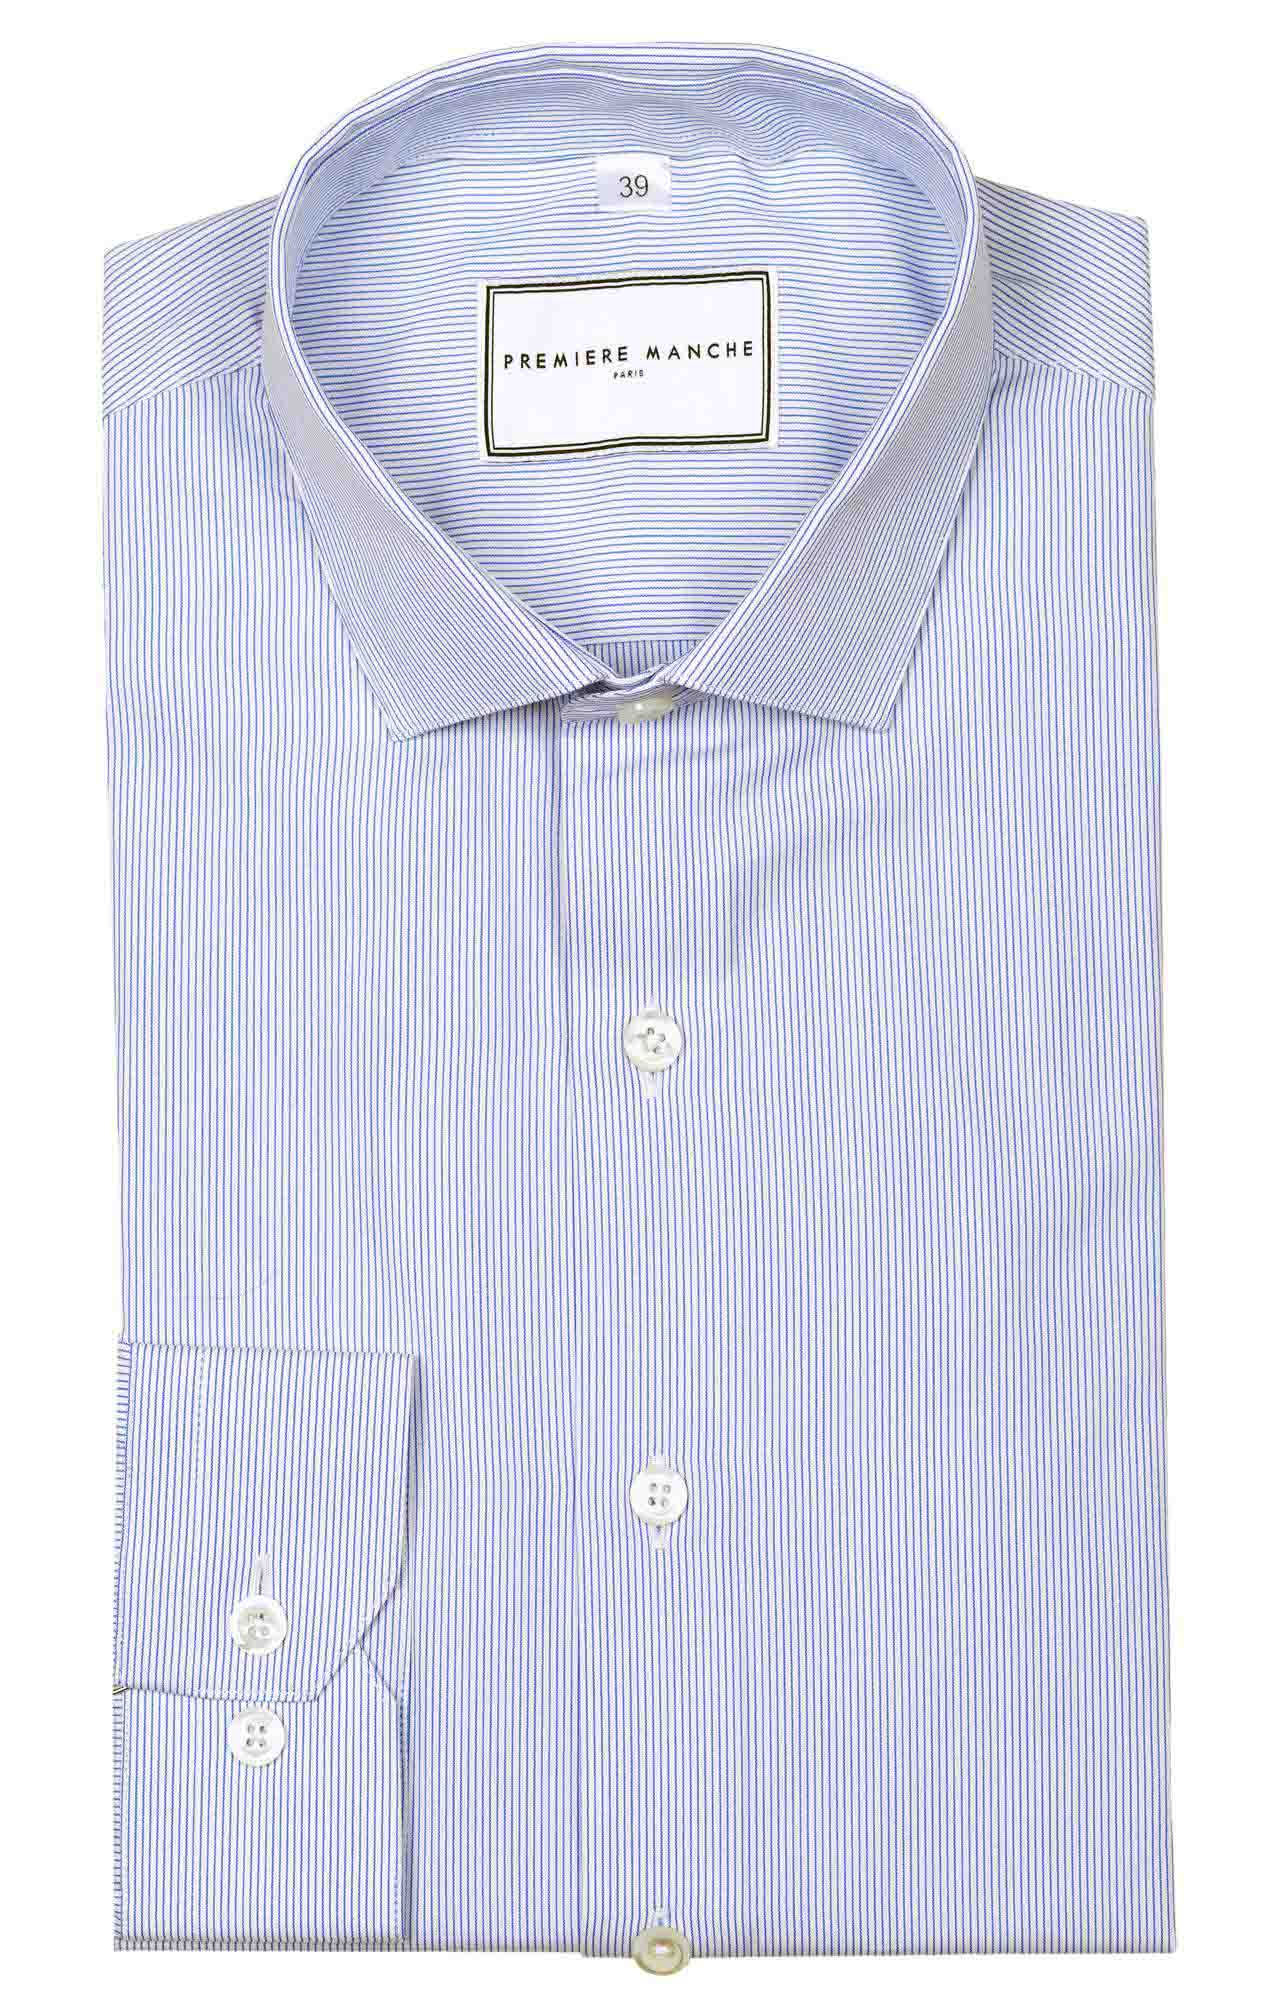 Small blue striped shirt